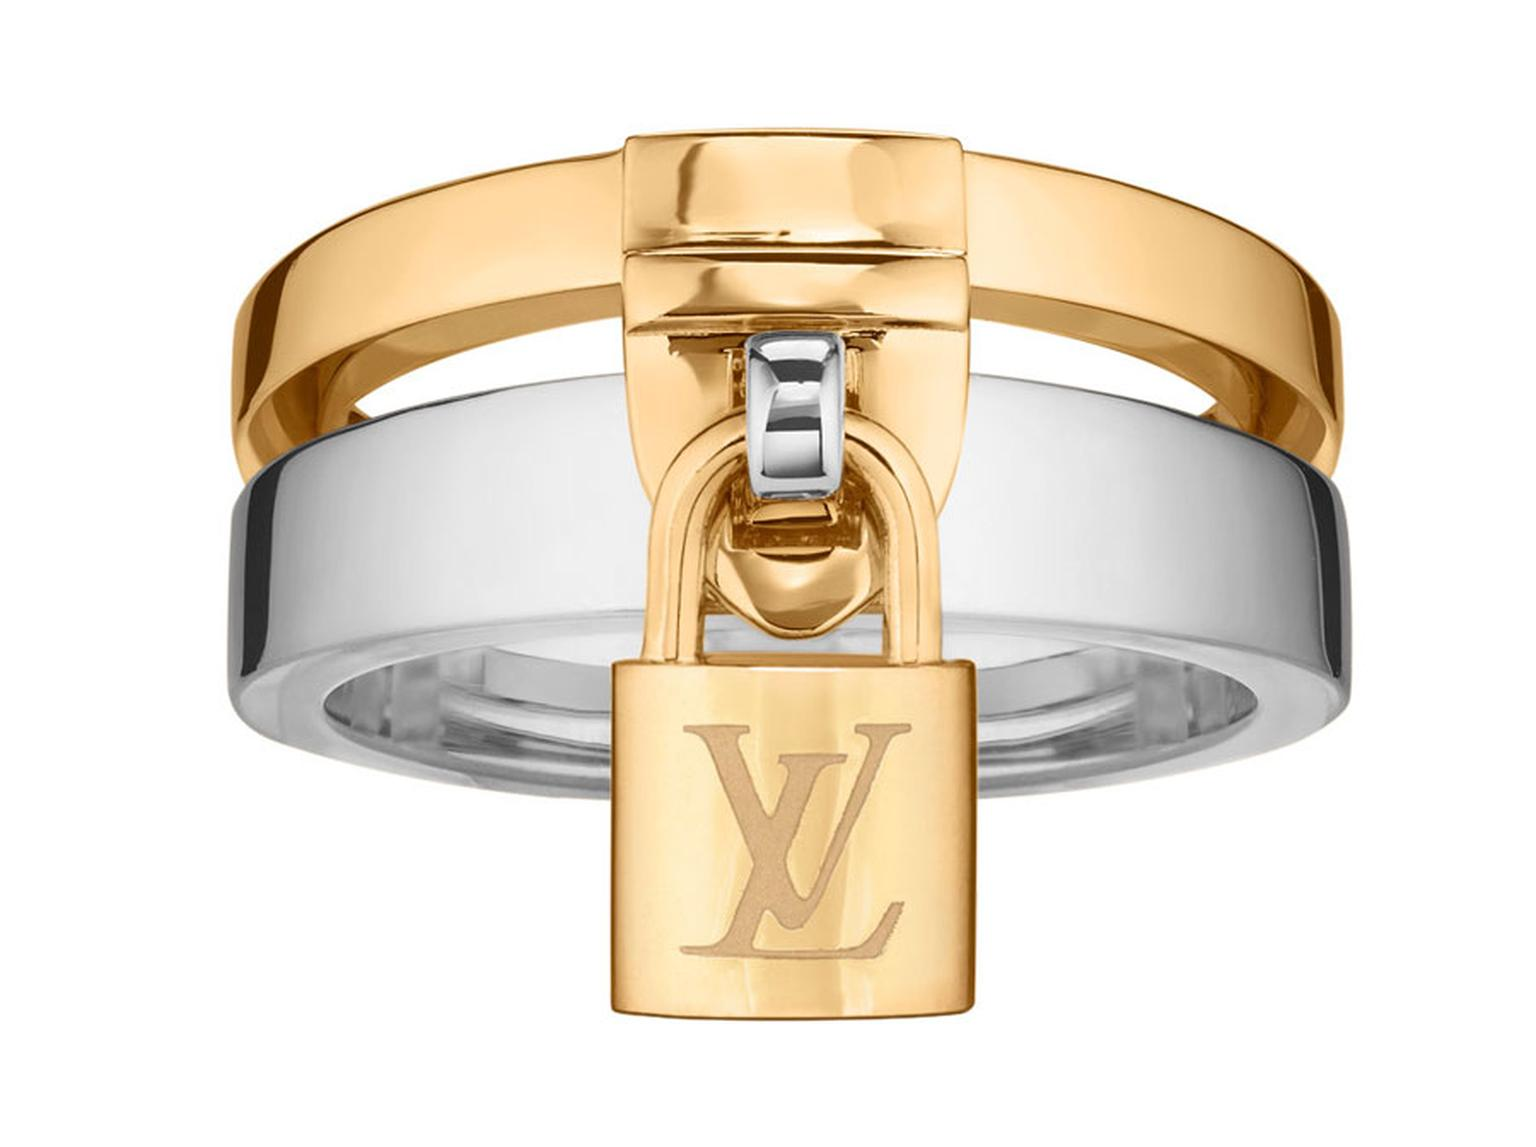 Louis-Vuitton-_BAGUE-LOCKIT-GM-BICO---Vue-de-face-.jpg